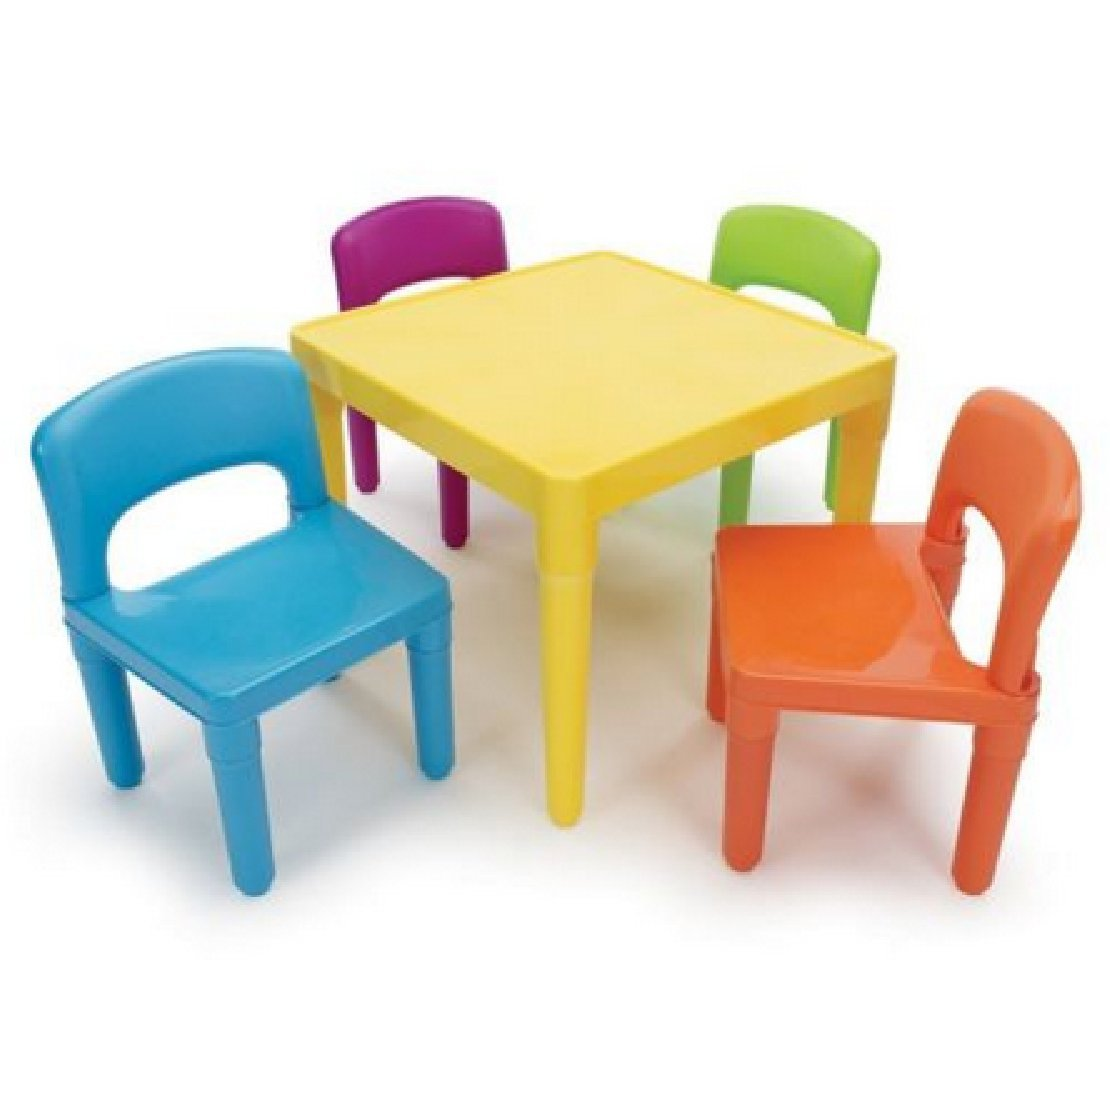 Amazon.com: Activity Table Kids Play Indoor Outdoor : Kids Table And Chairs  Play Set Toddler Child Toy Activity Furniture In Outdoor : Toddler Set Play  ...